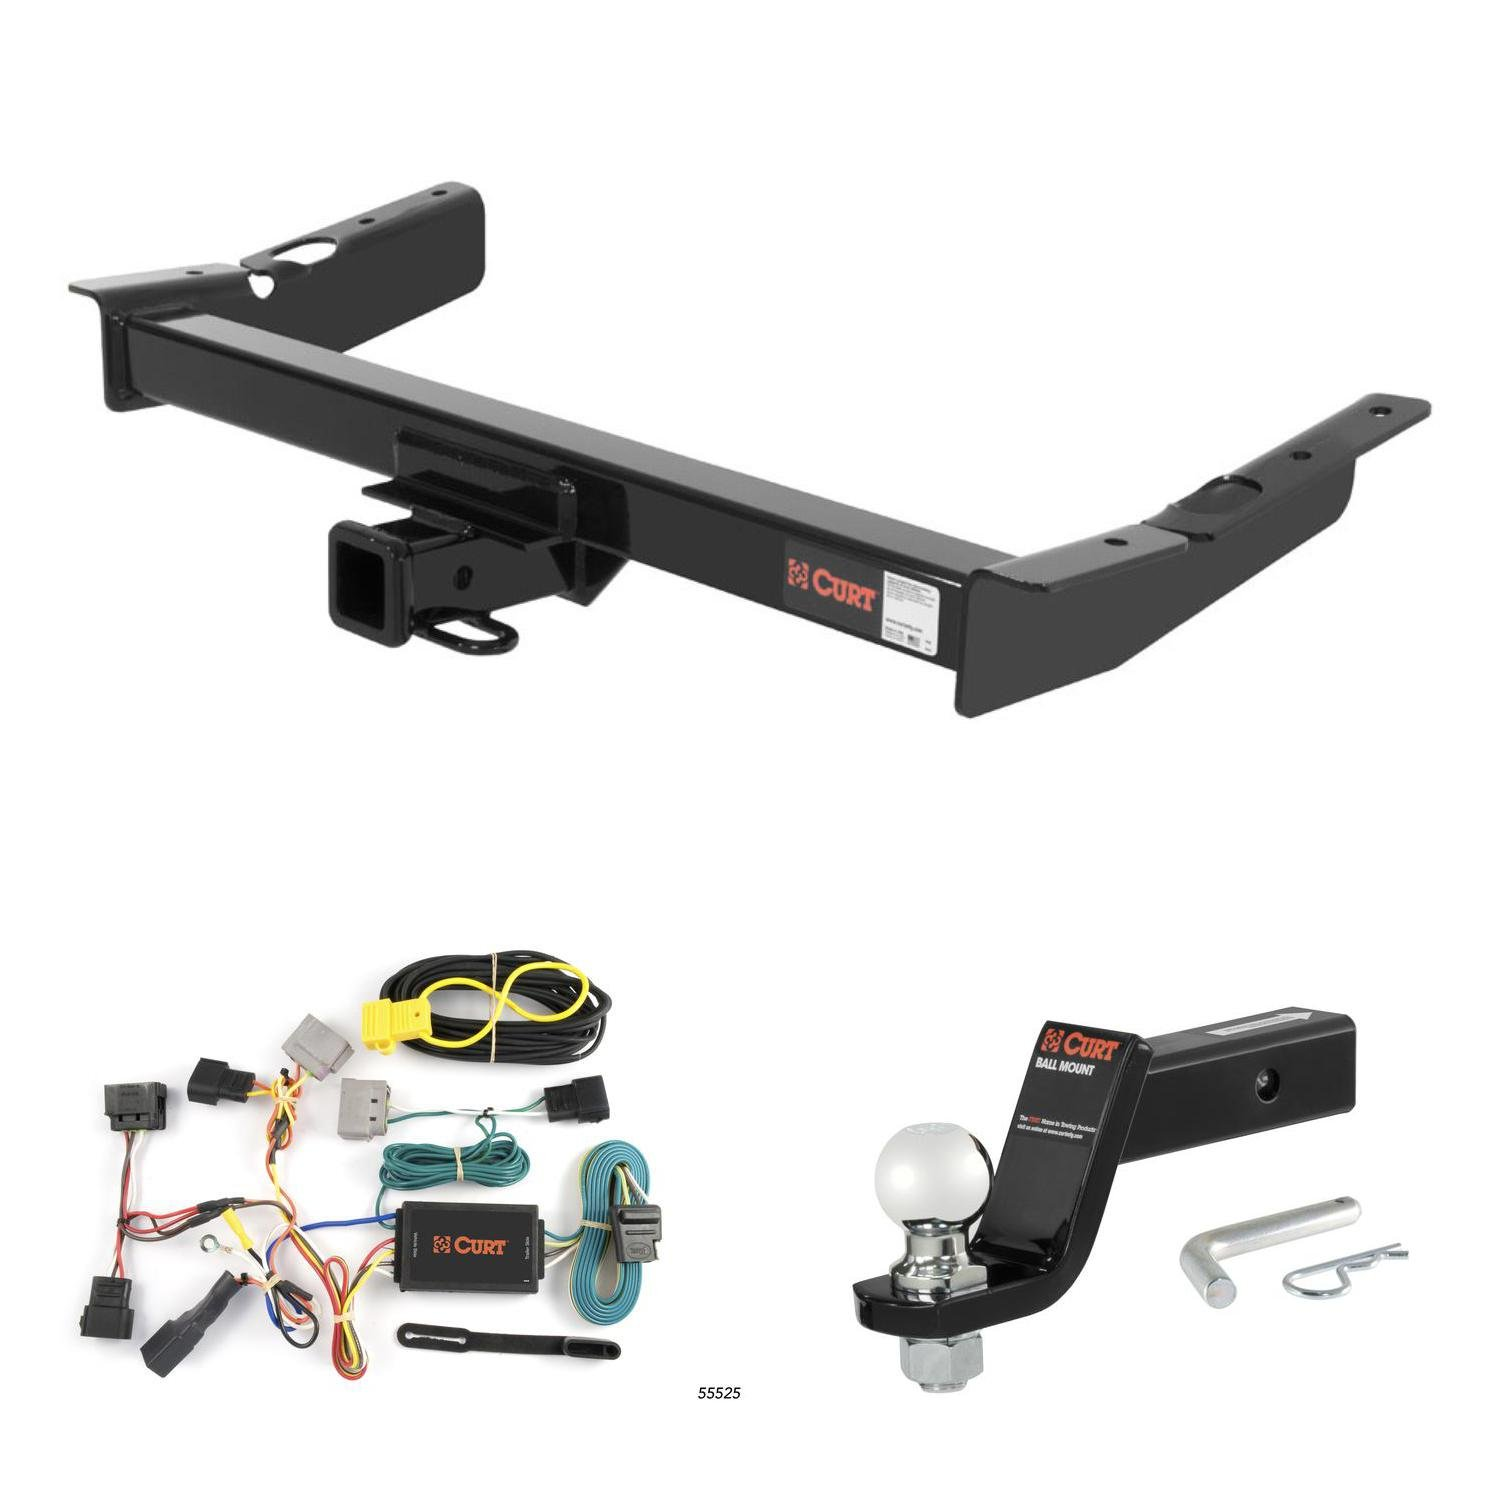 Curt Trailer Hitch Wiring 2 5 16 Ball Mount W 4 2003 Windstar Drop For 03 Ford Automotive